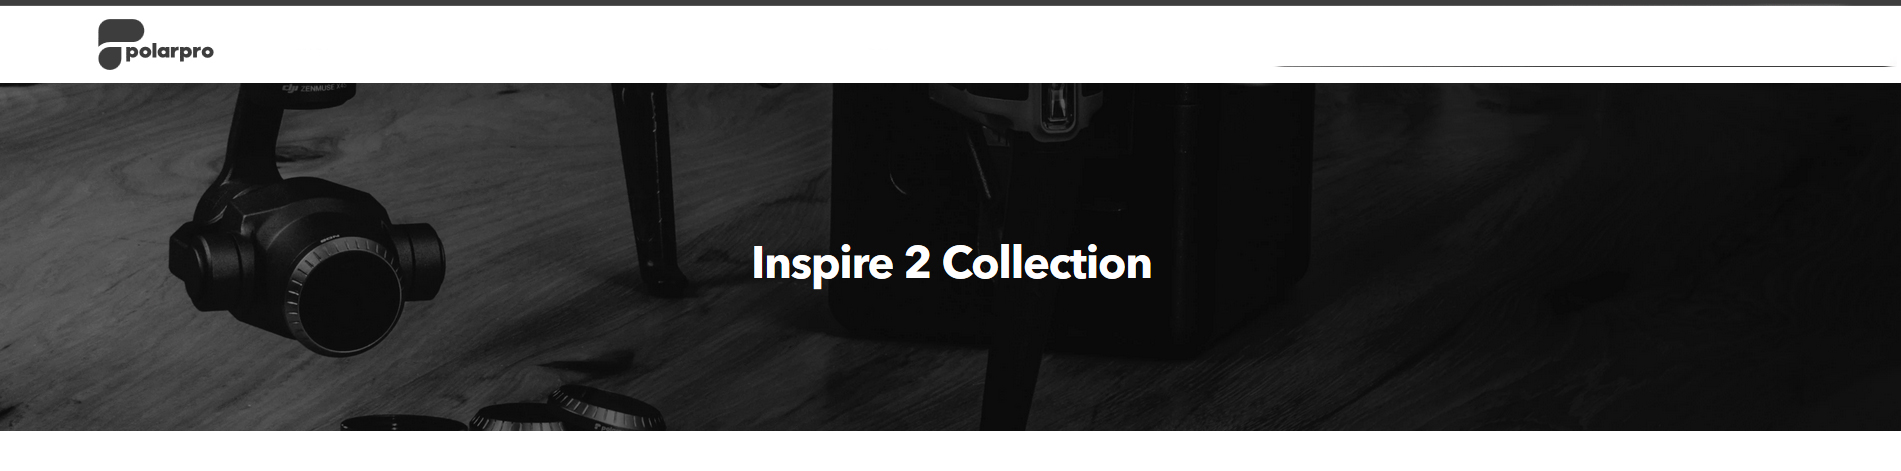 Inspire-2-collection